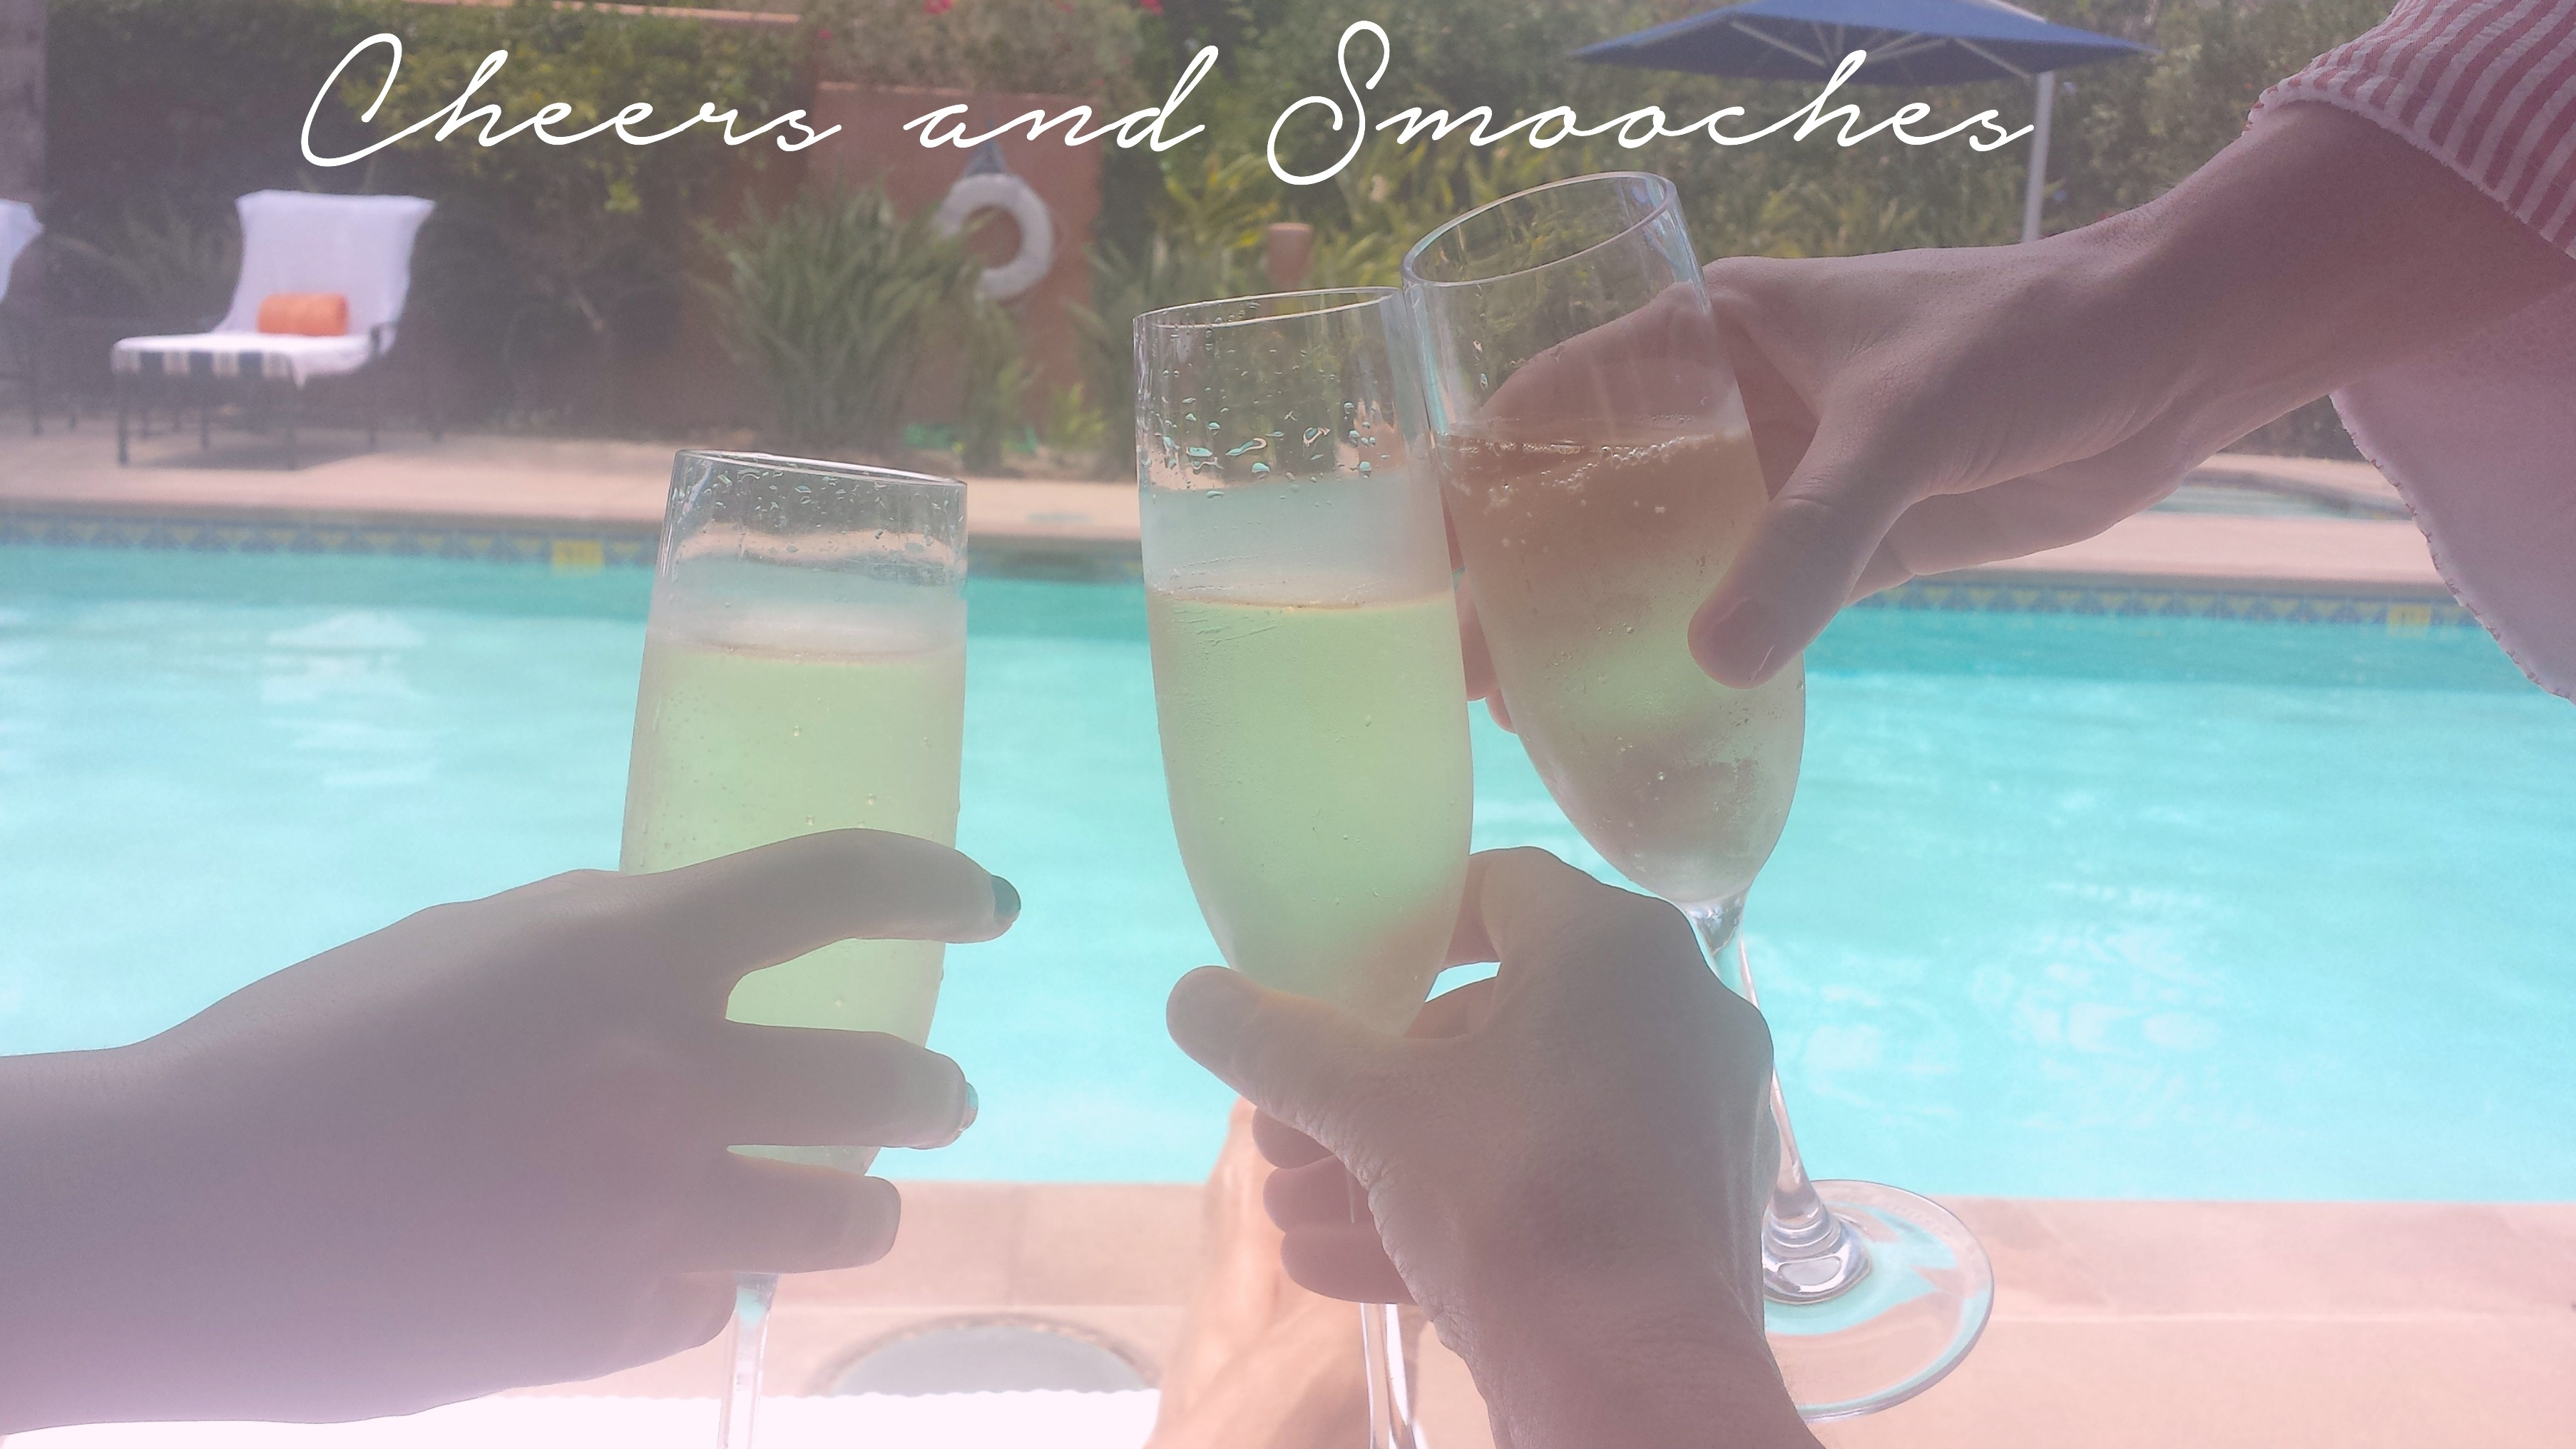 cheers and smooches